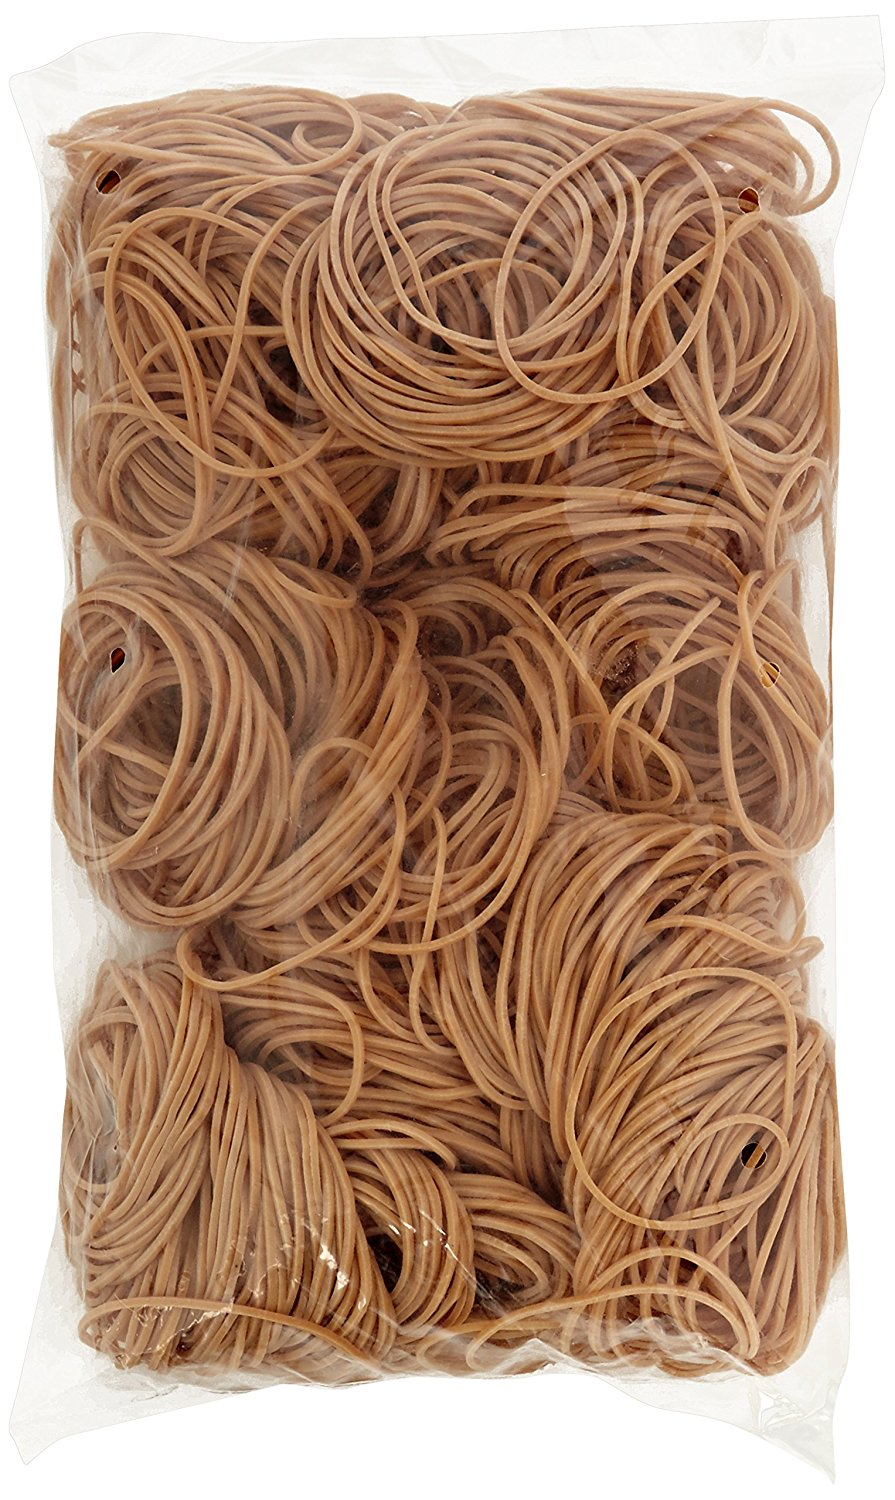 Rubber Bands ValueX Rubber Bands (No 24) 1.5mmx150mm 454g